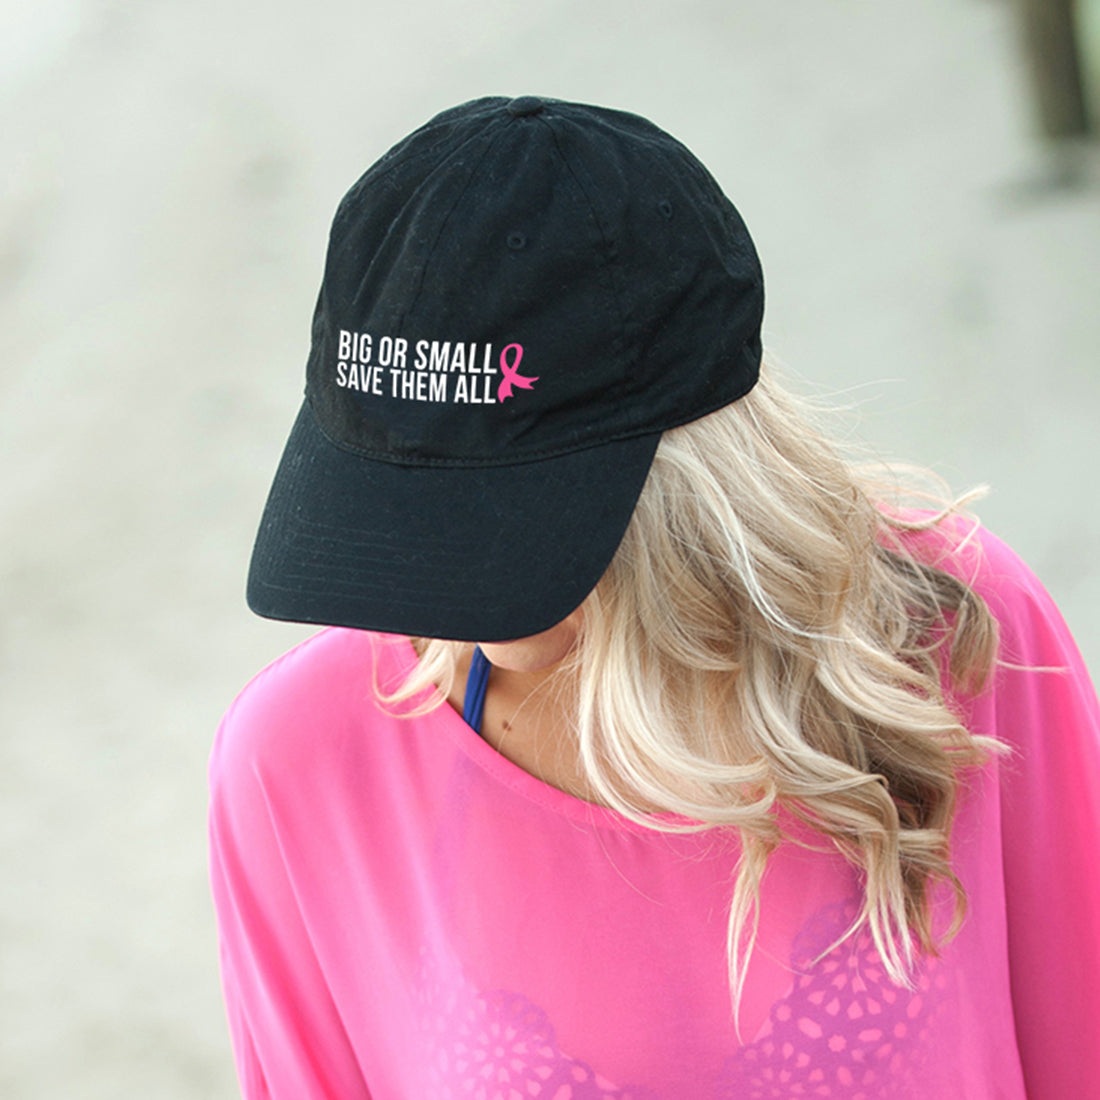 Breast Cancer Awareness Cap - Big or Small, Save them All,Hats - Dirt Road Divas Boutique